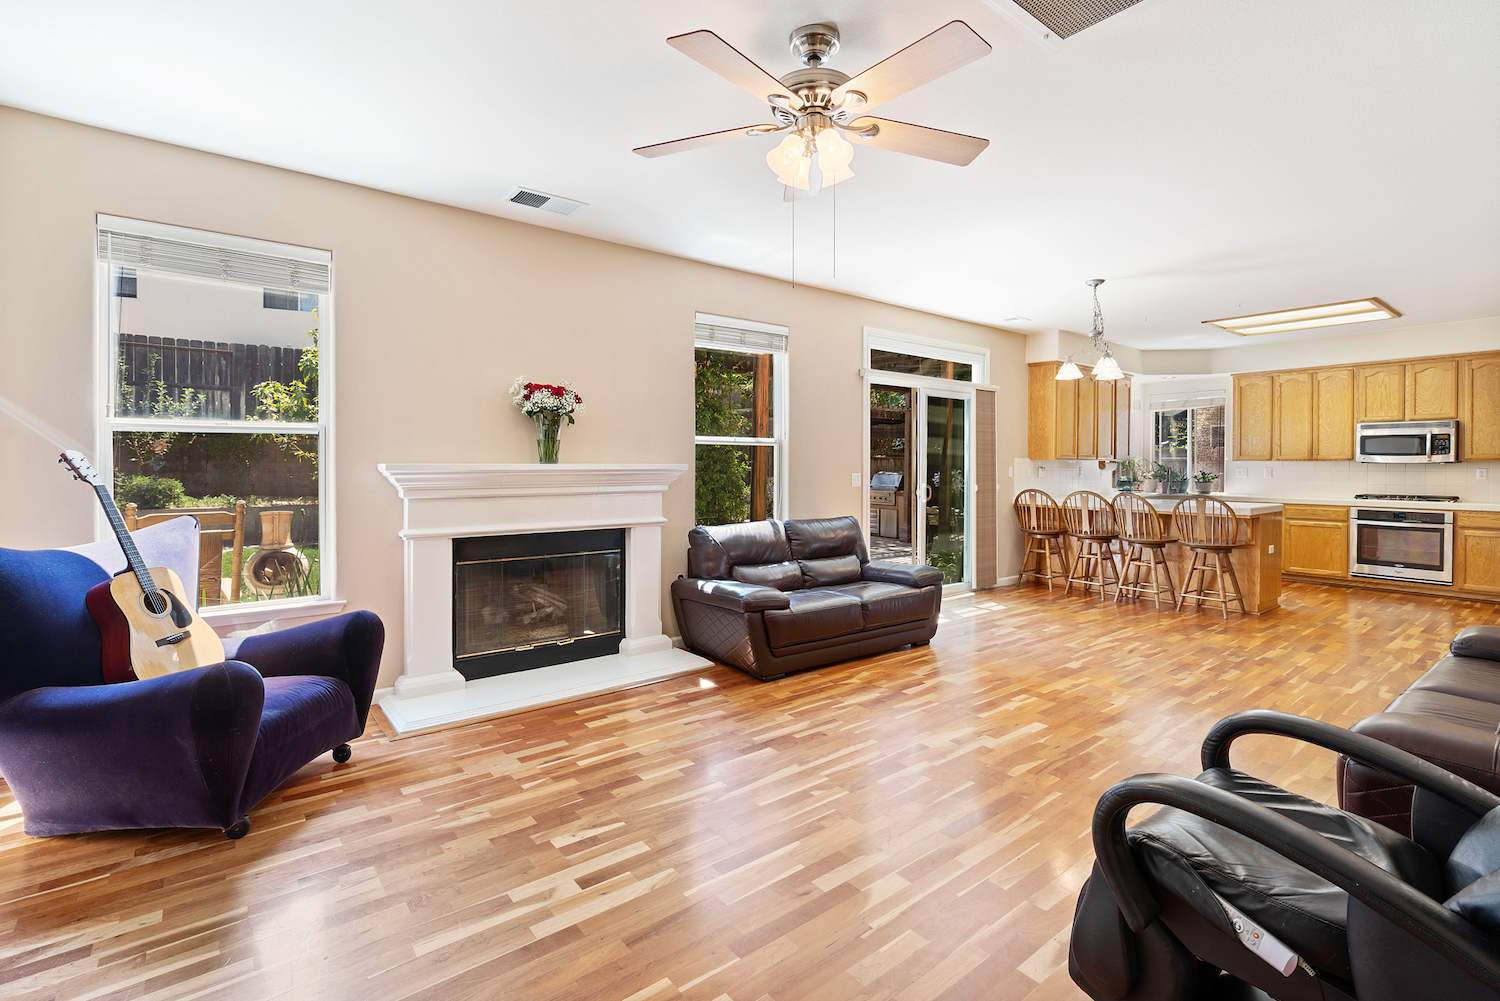 2241 glenview dr - living space